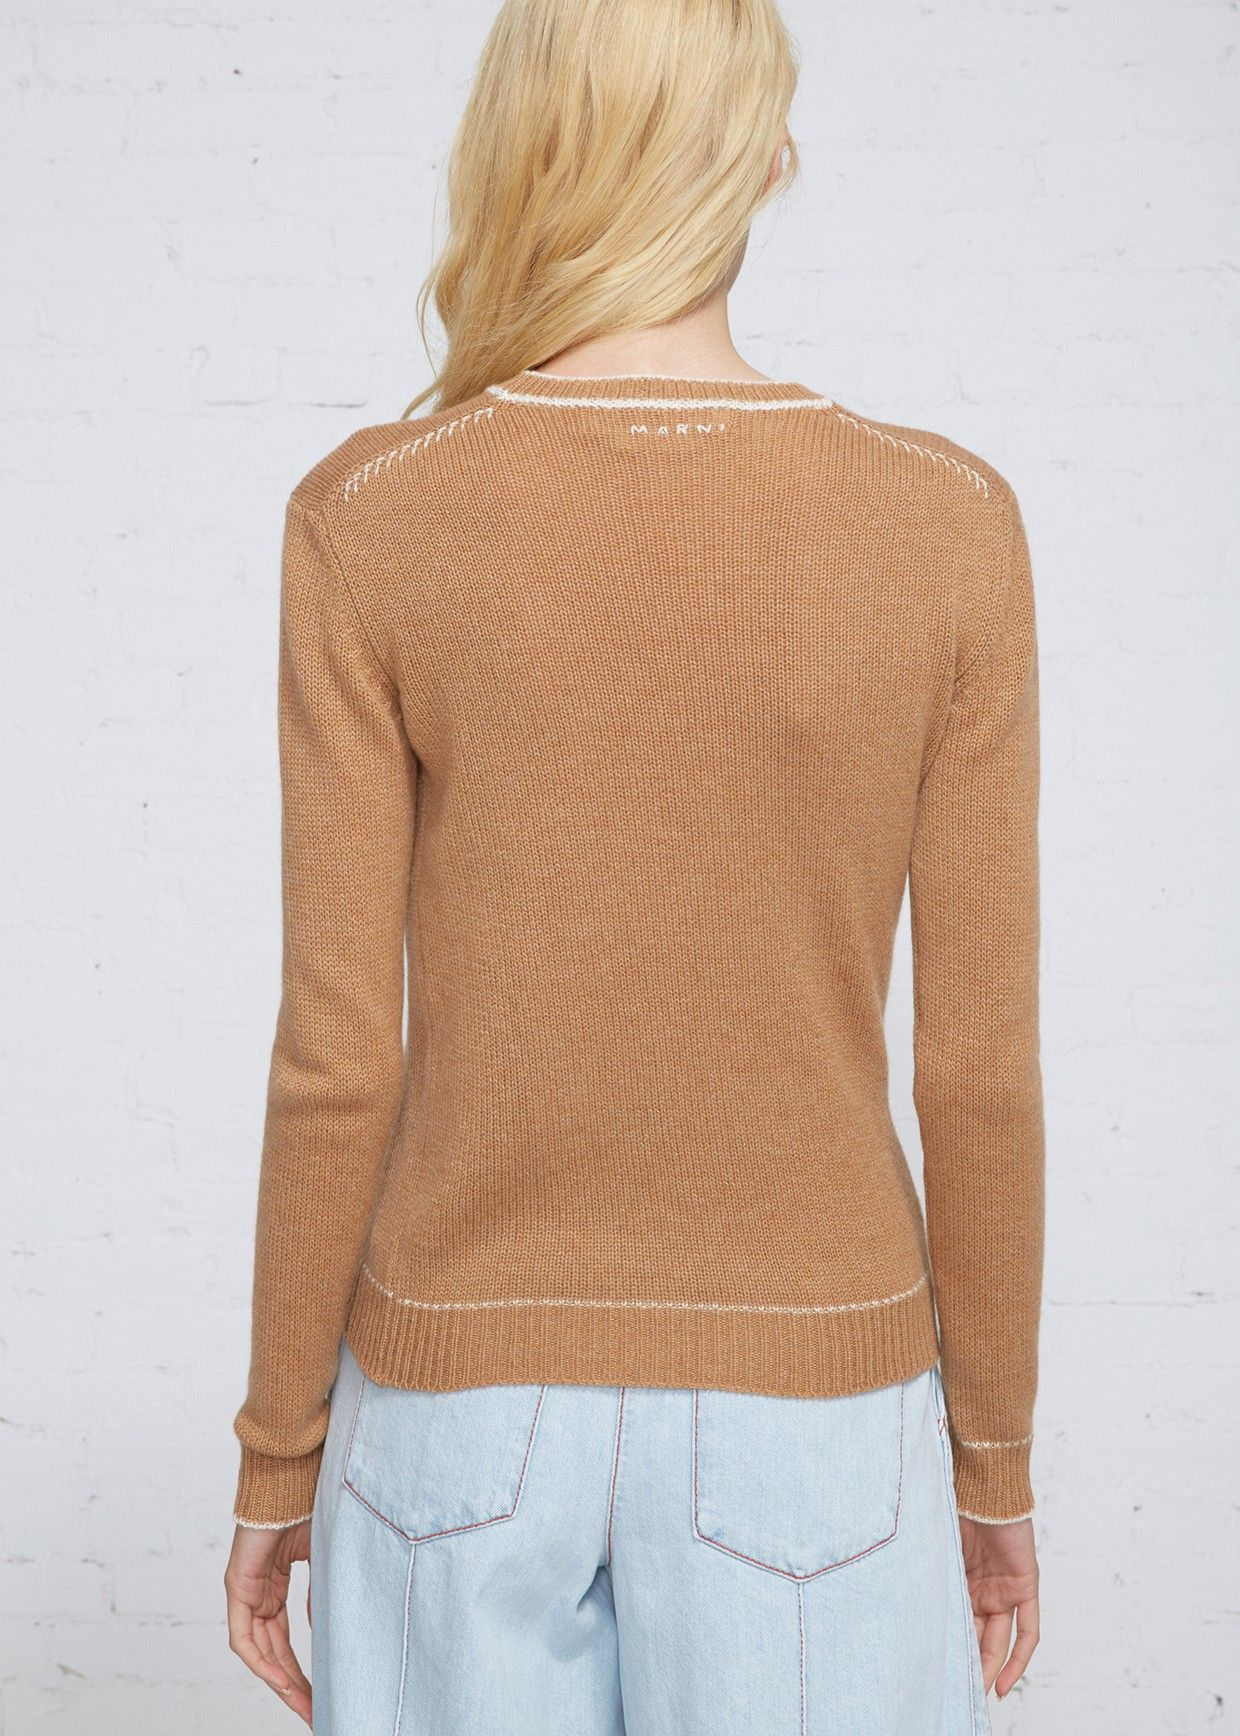 7d154b436acb8d Totokaelo Crew Neck Sweater - Knitwear - Apparel - Womens | style ...